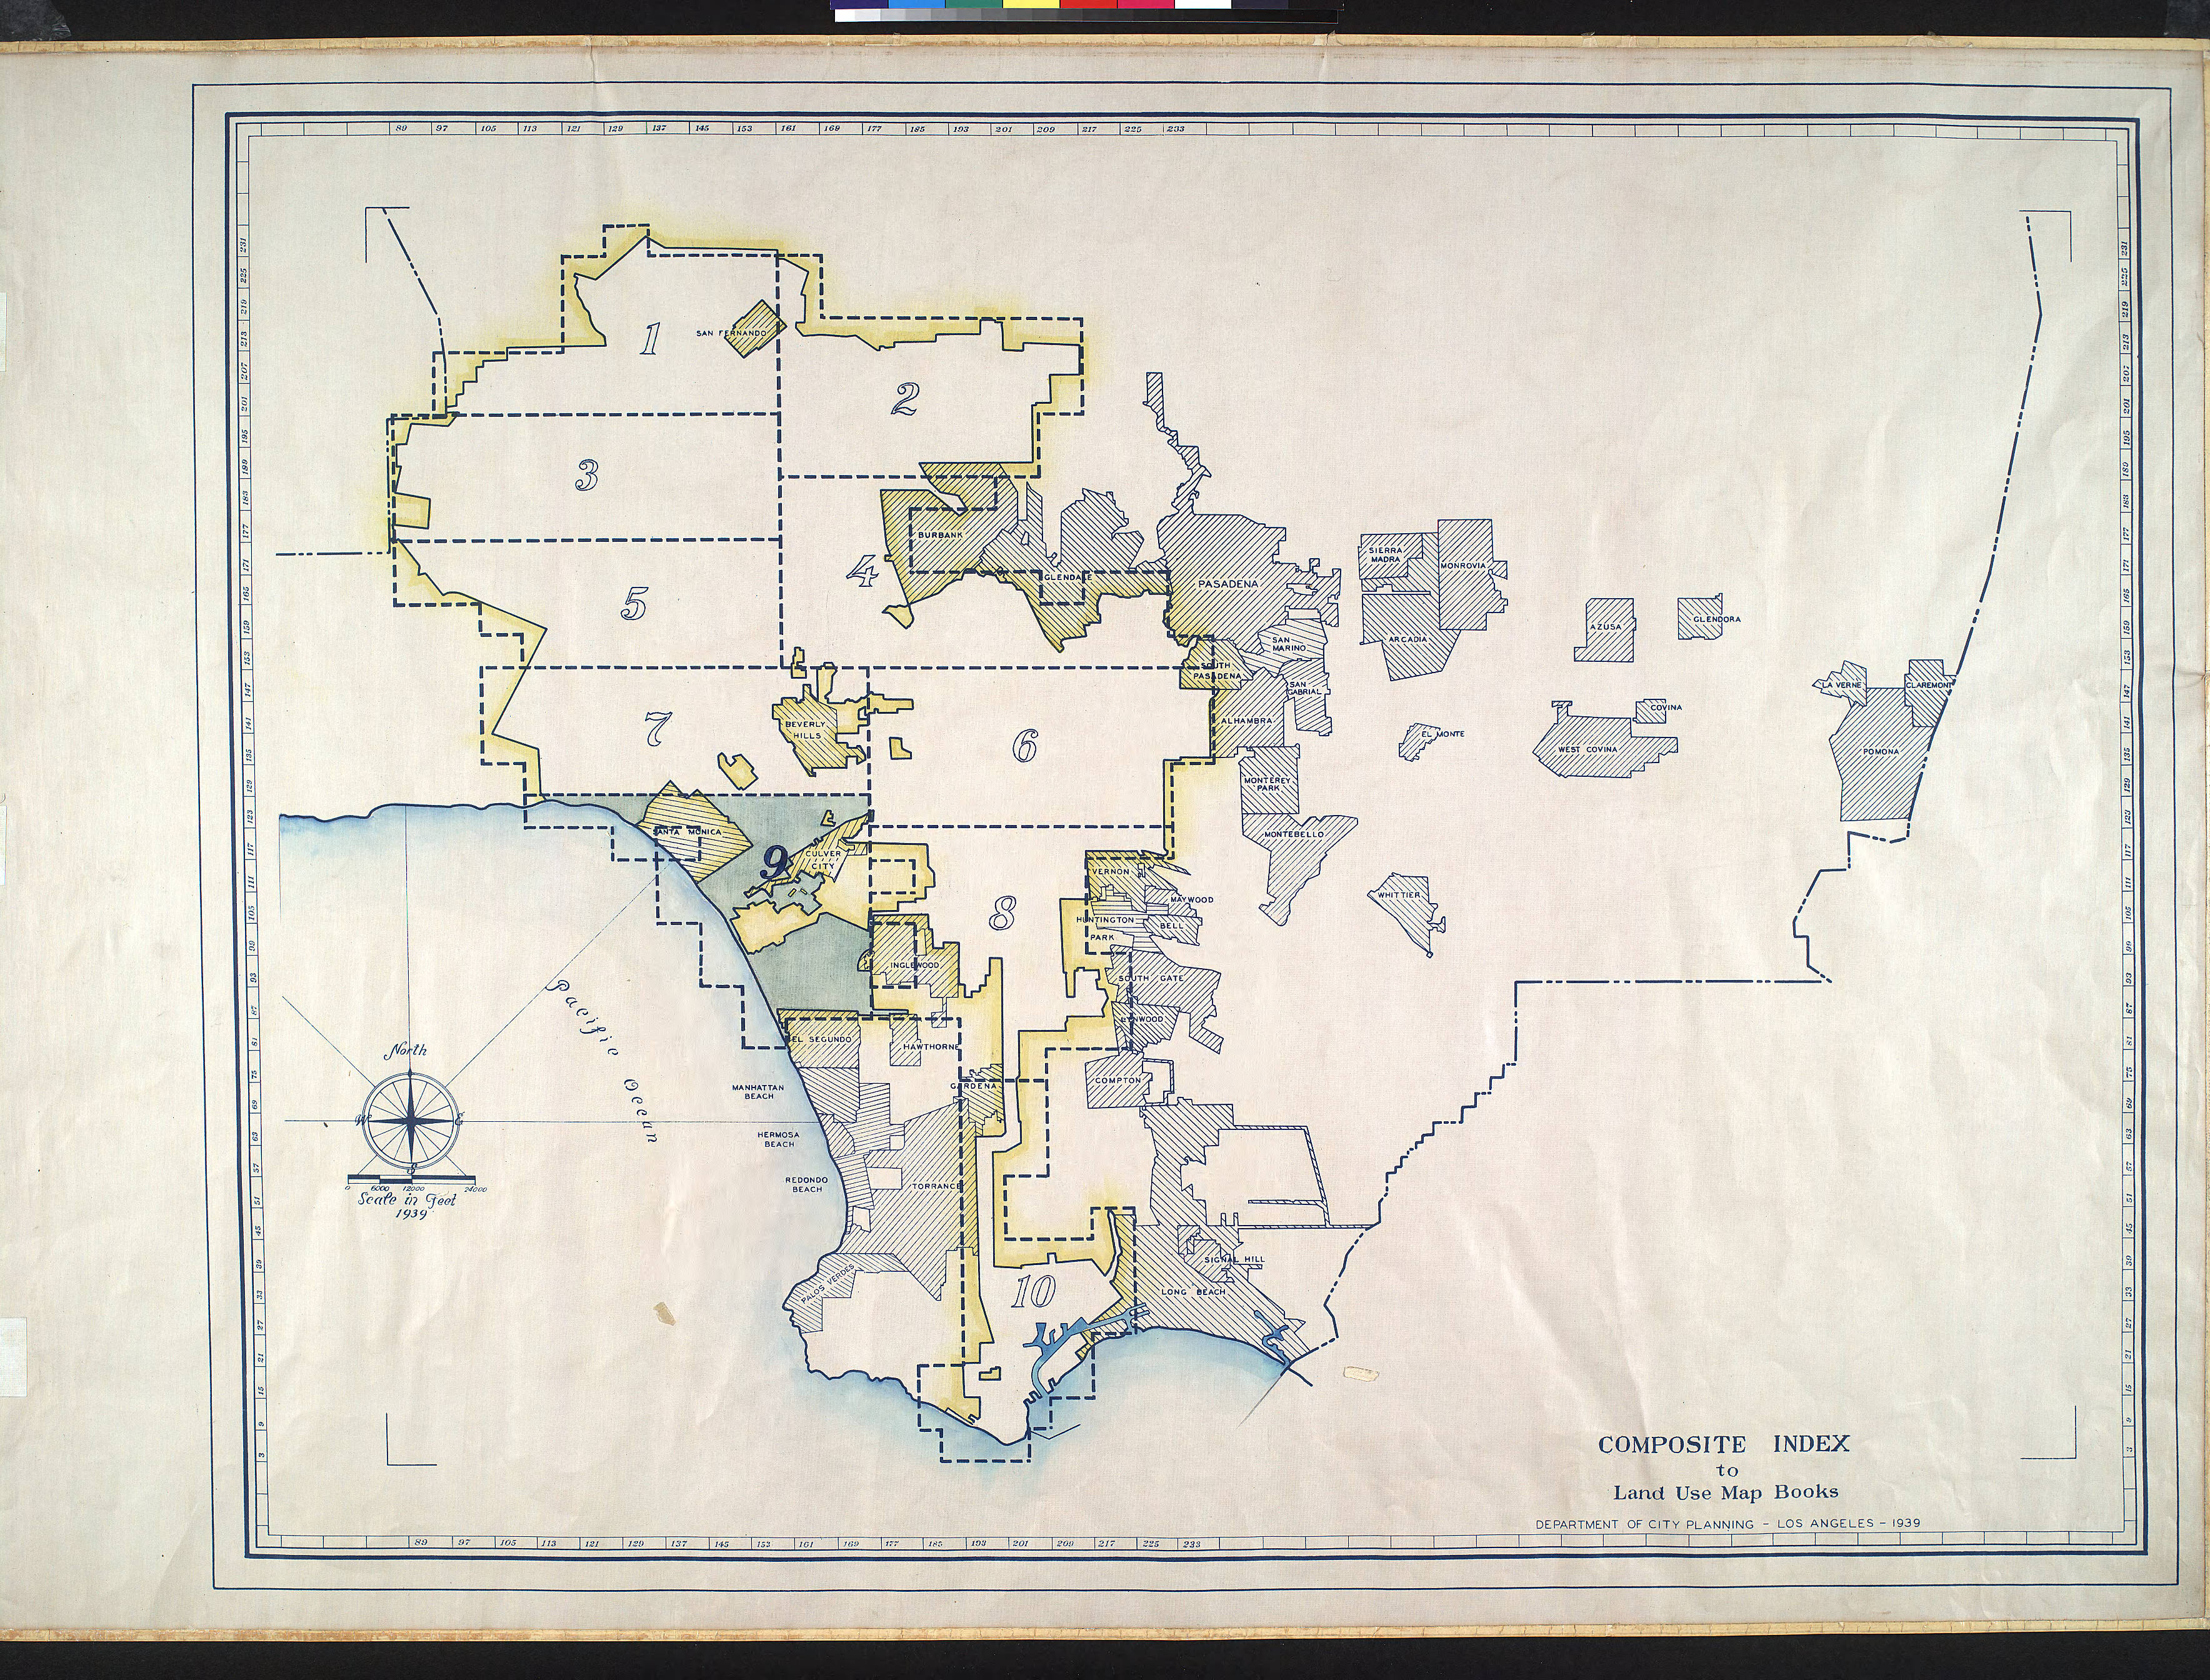 City Of Los Angeles Organizational Chart: WPA Land use survey map for the City of Los Angeles book 9 ,Chart